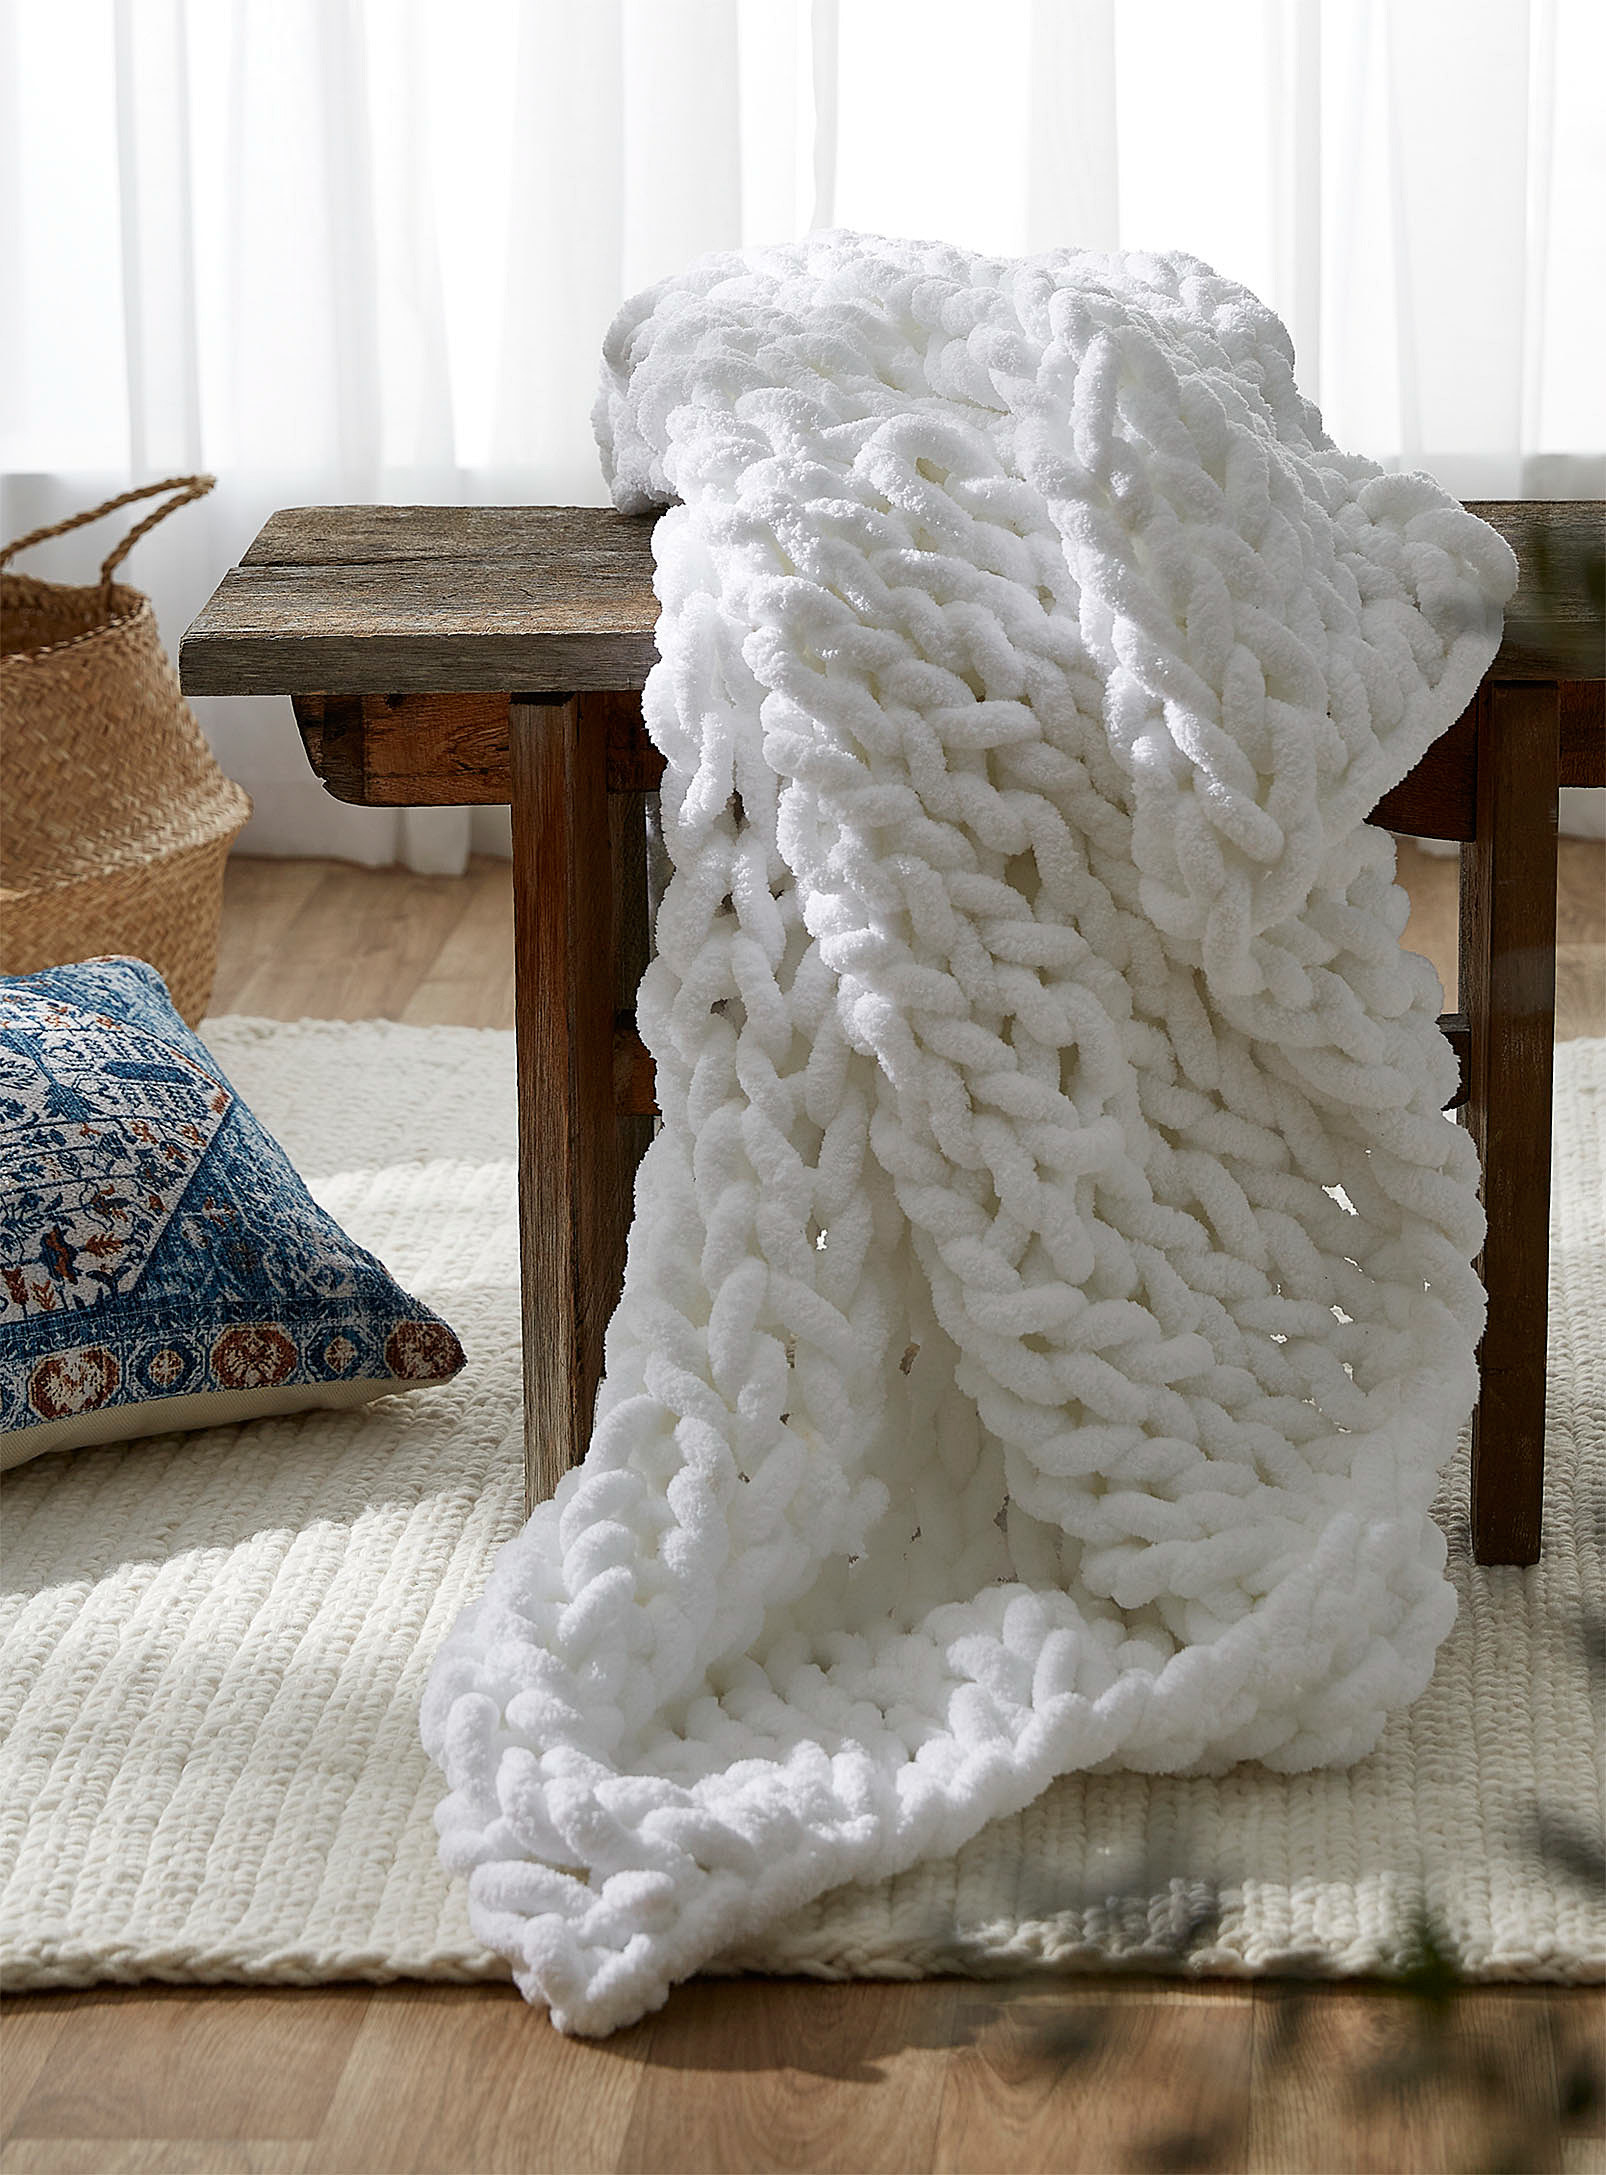 A large throw blanket draped over a bench